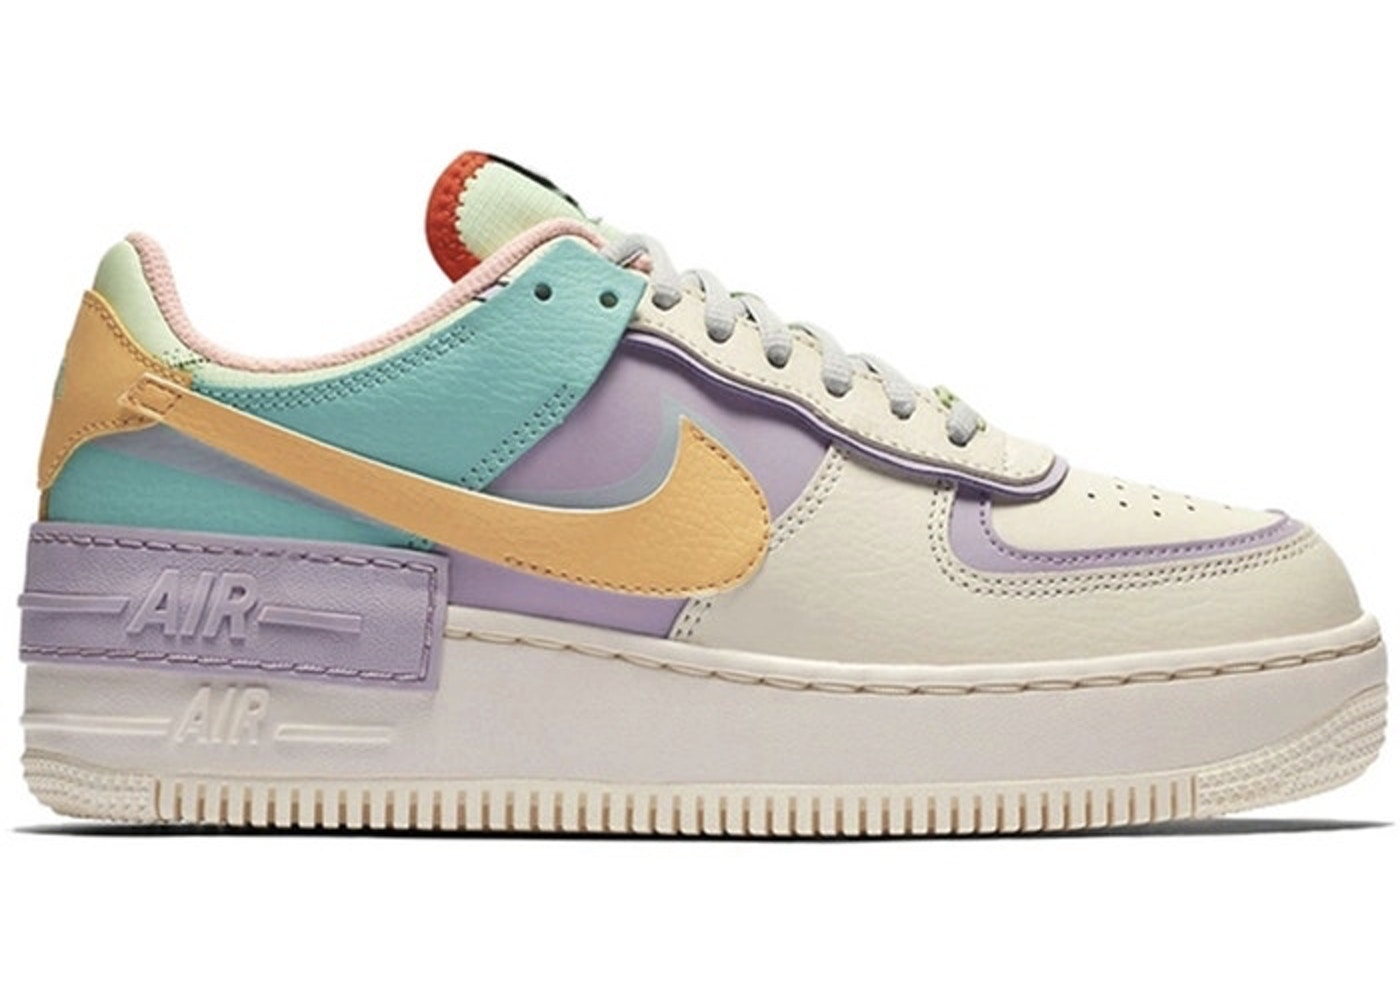 Nike Air Force 1 Shadow Pale Ivory W Hypeanalyzer Nike air force 1 2011 gray neon bolt blue and red 5.5 y very rare. nike air force 1 shadow pale ivory w